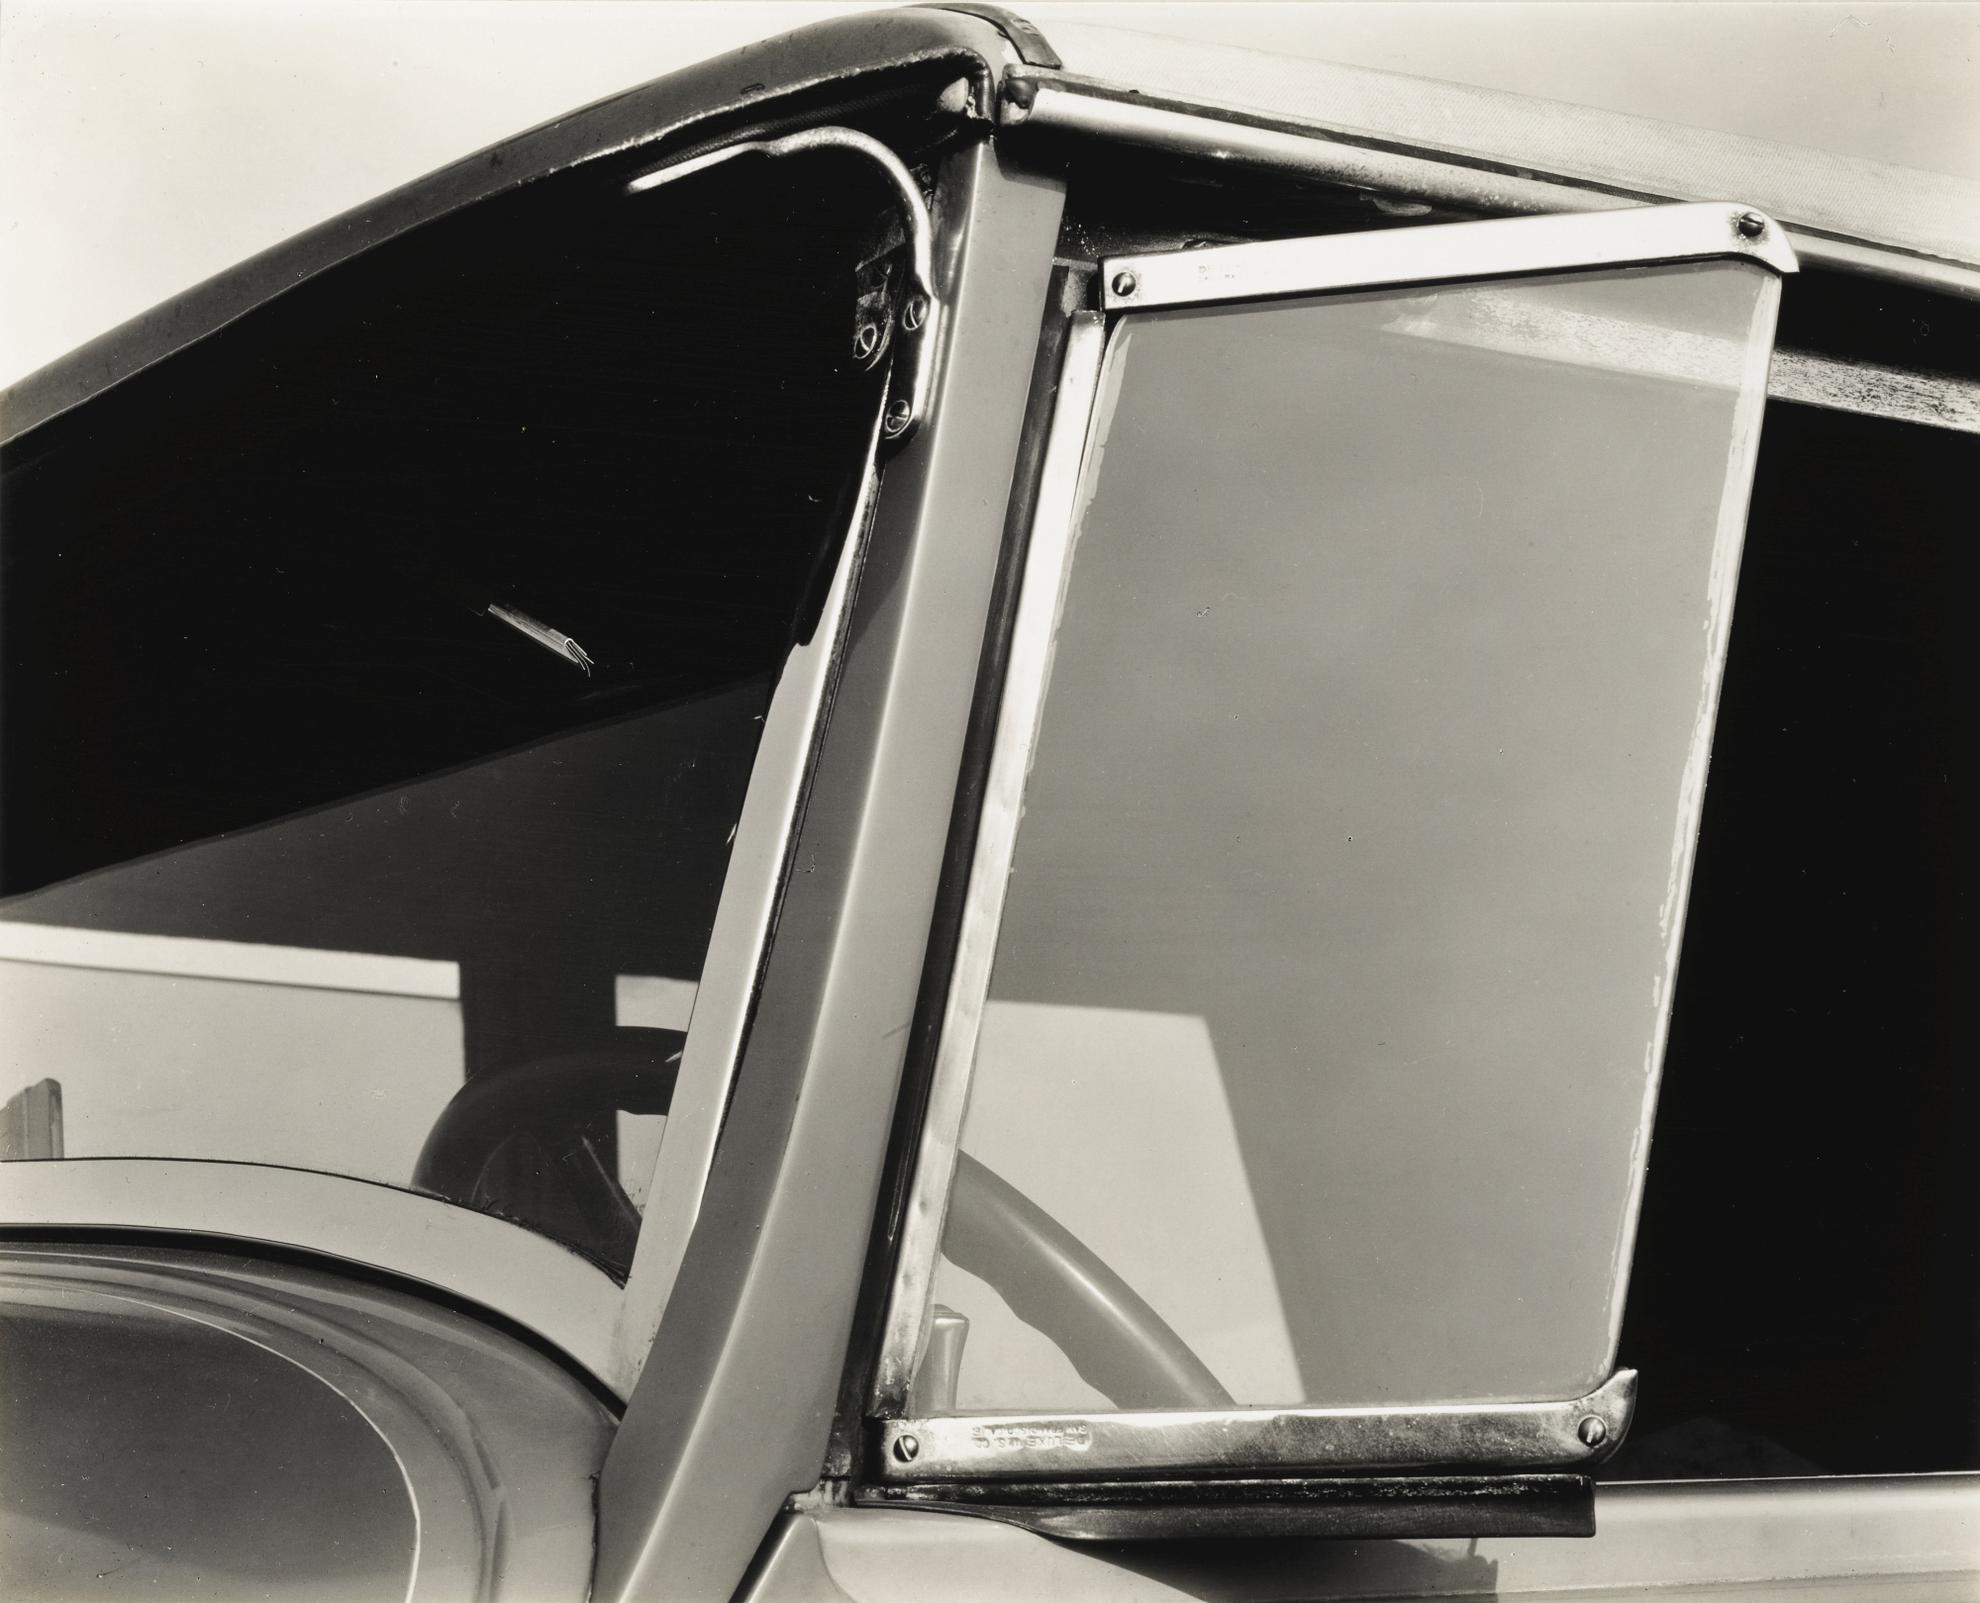 Brett Weston-Untitled (Truck Window, Deluxe U. S. Company, San Francisco)-